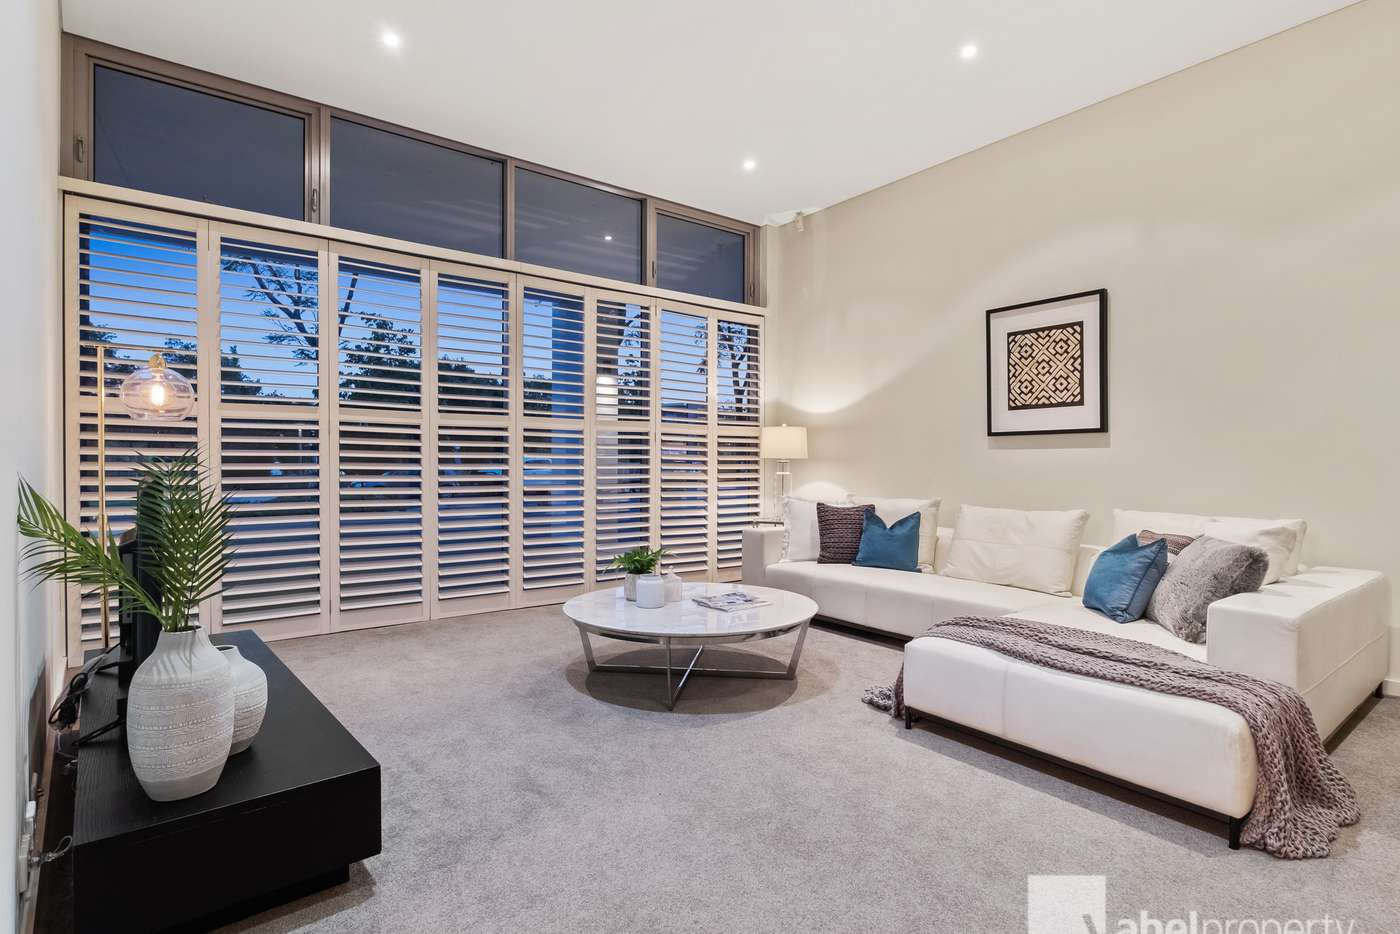 Fifth view of Homely house listing, 42 The Circus, Burswood WA 6100